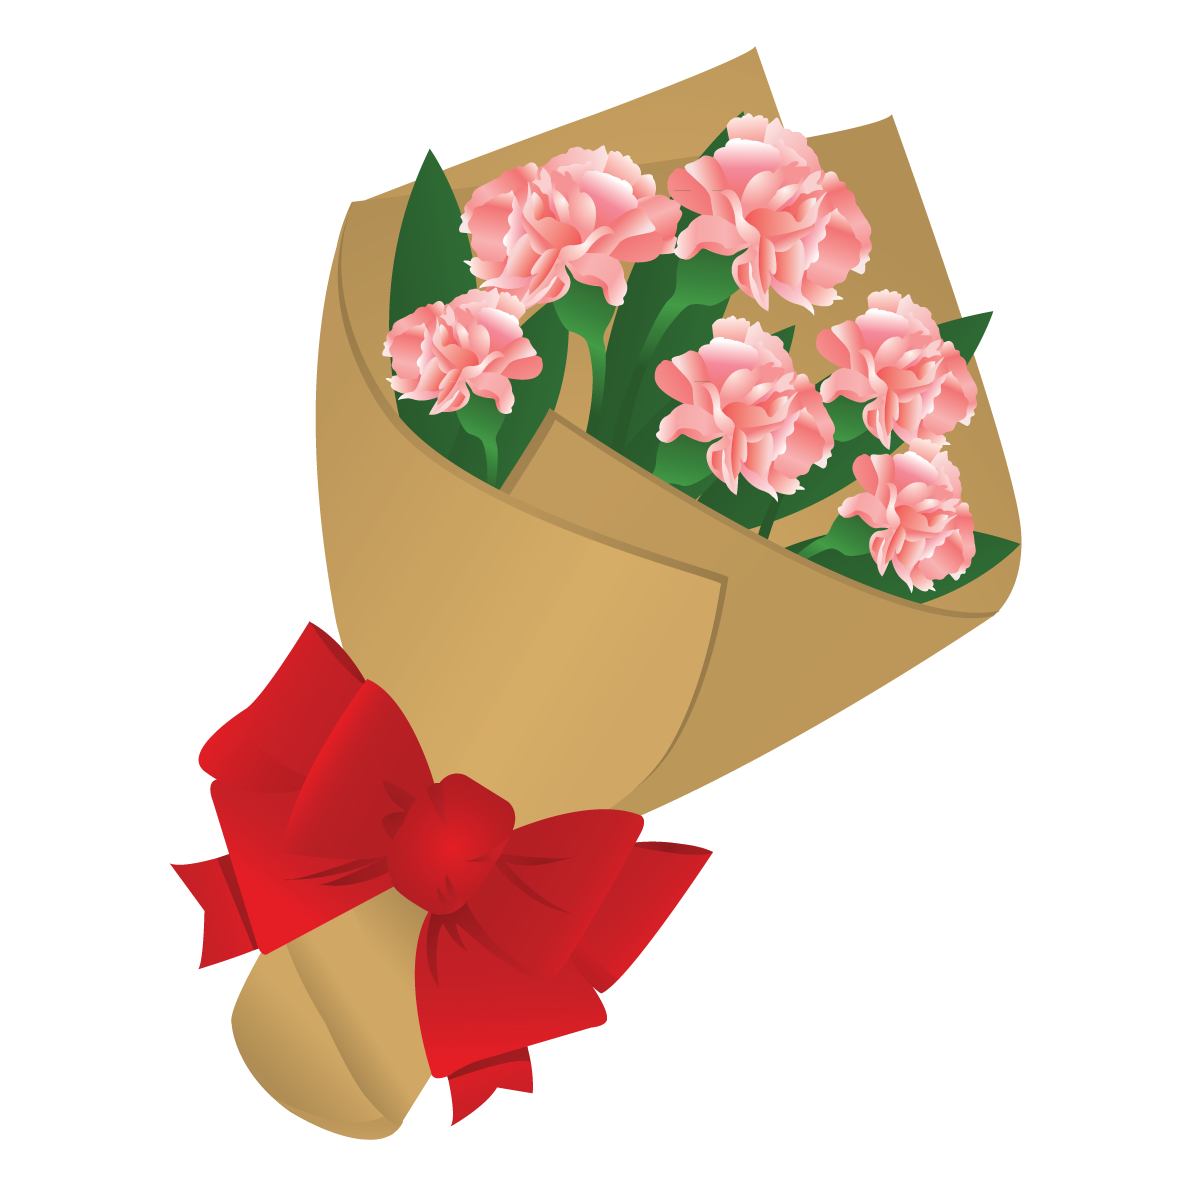 valentines roses and flowers clipart 10 free Cliparts ...